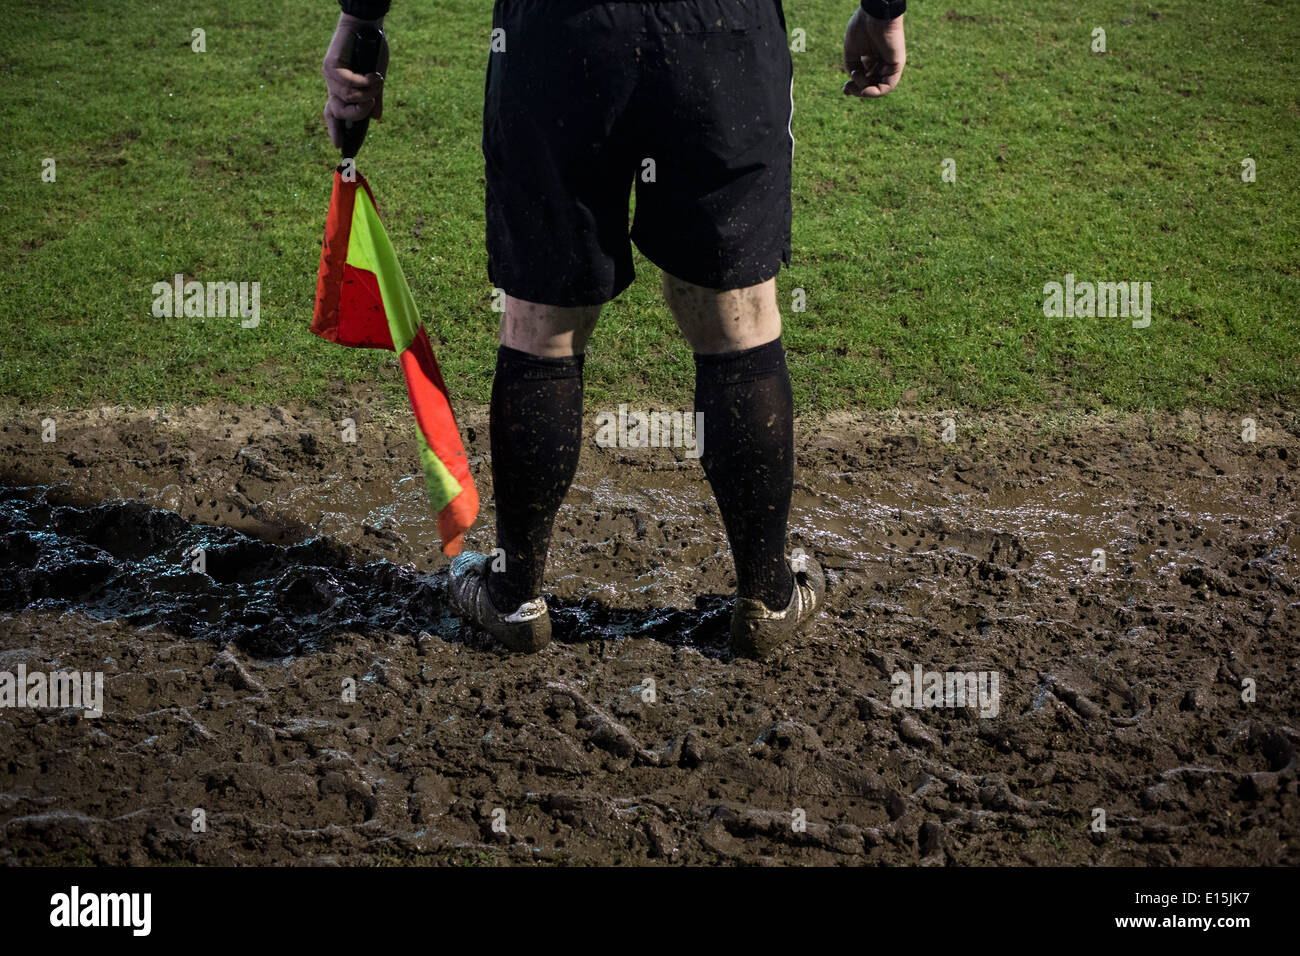 A referee's assistant's legs covered in mud during Belper Town FC's match against Gresley, Belper, Derbyshire. - Stock Image